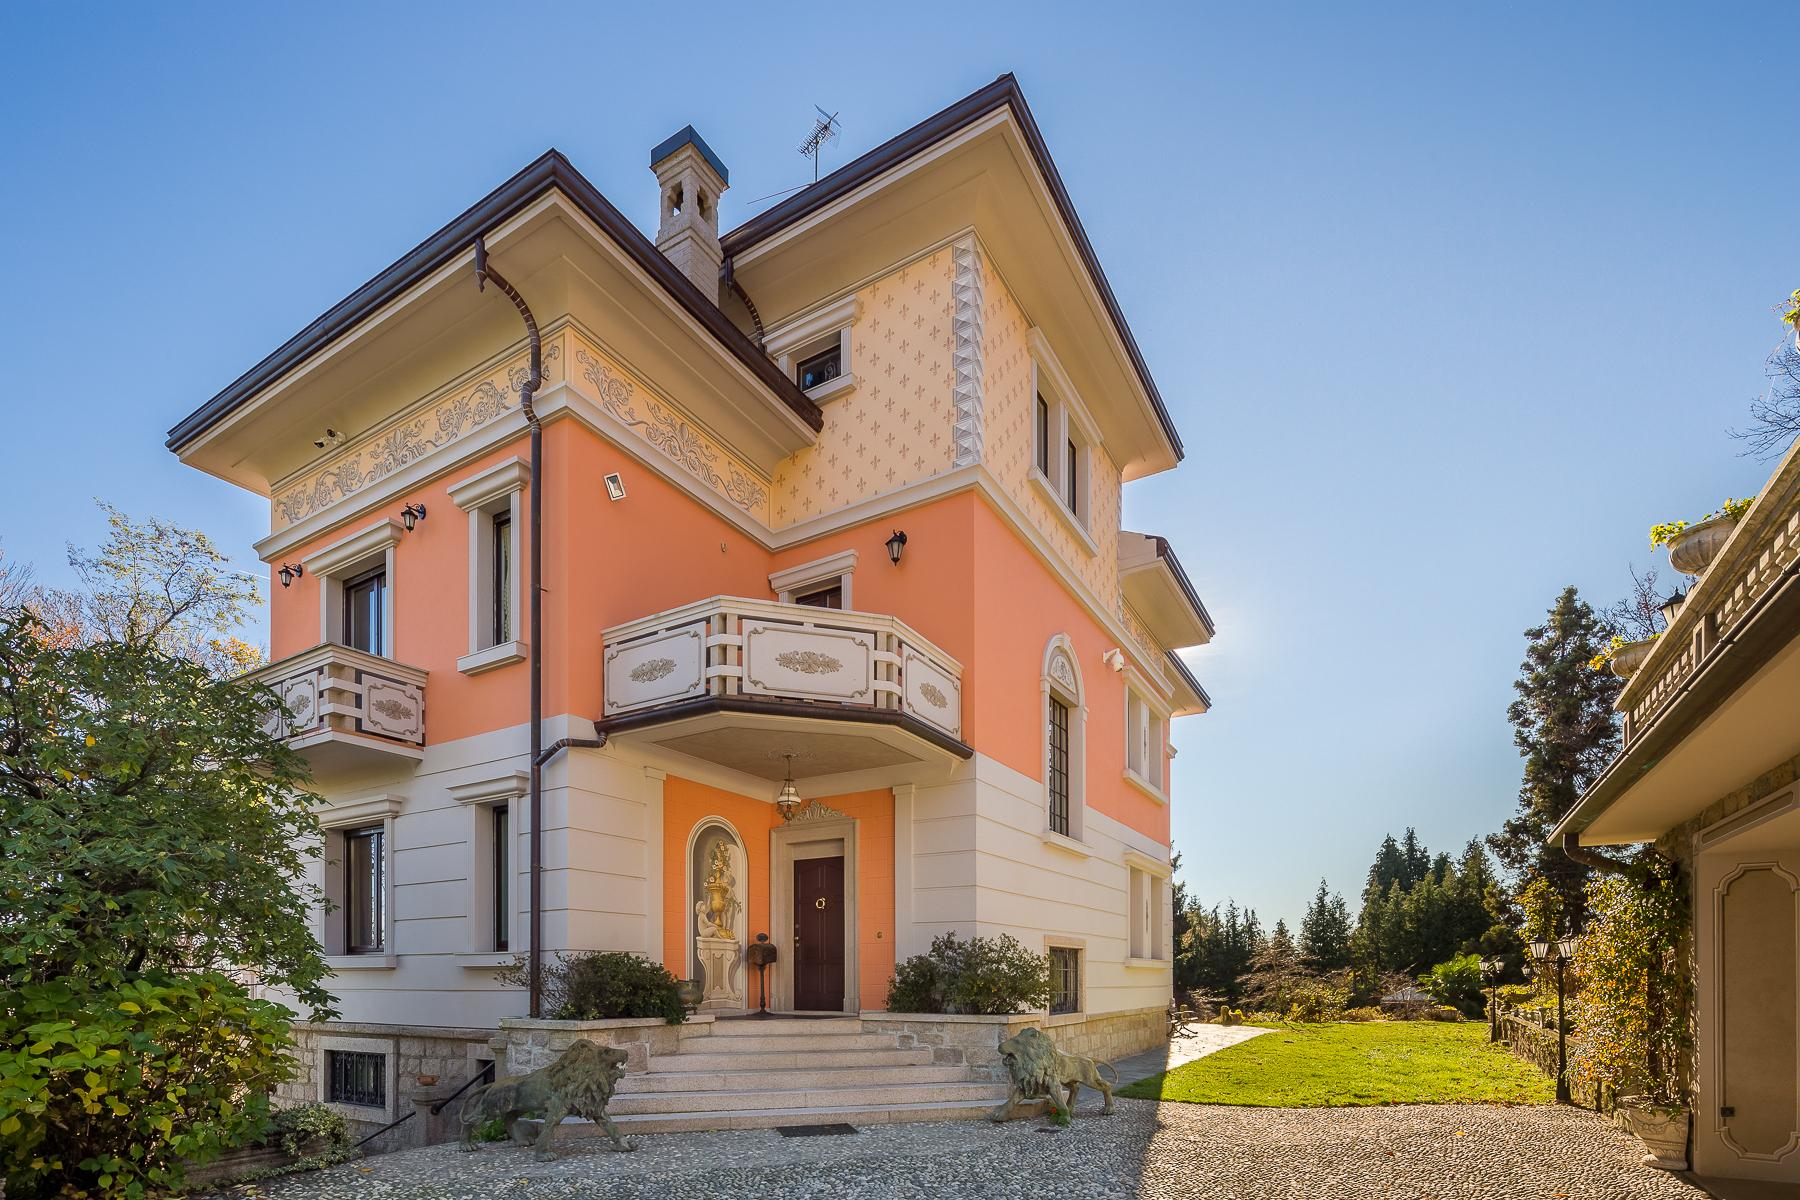 Elegance and history on the hills of Stresa - 4